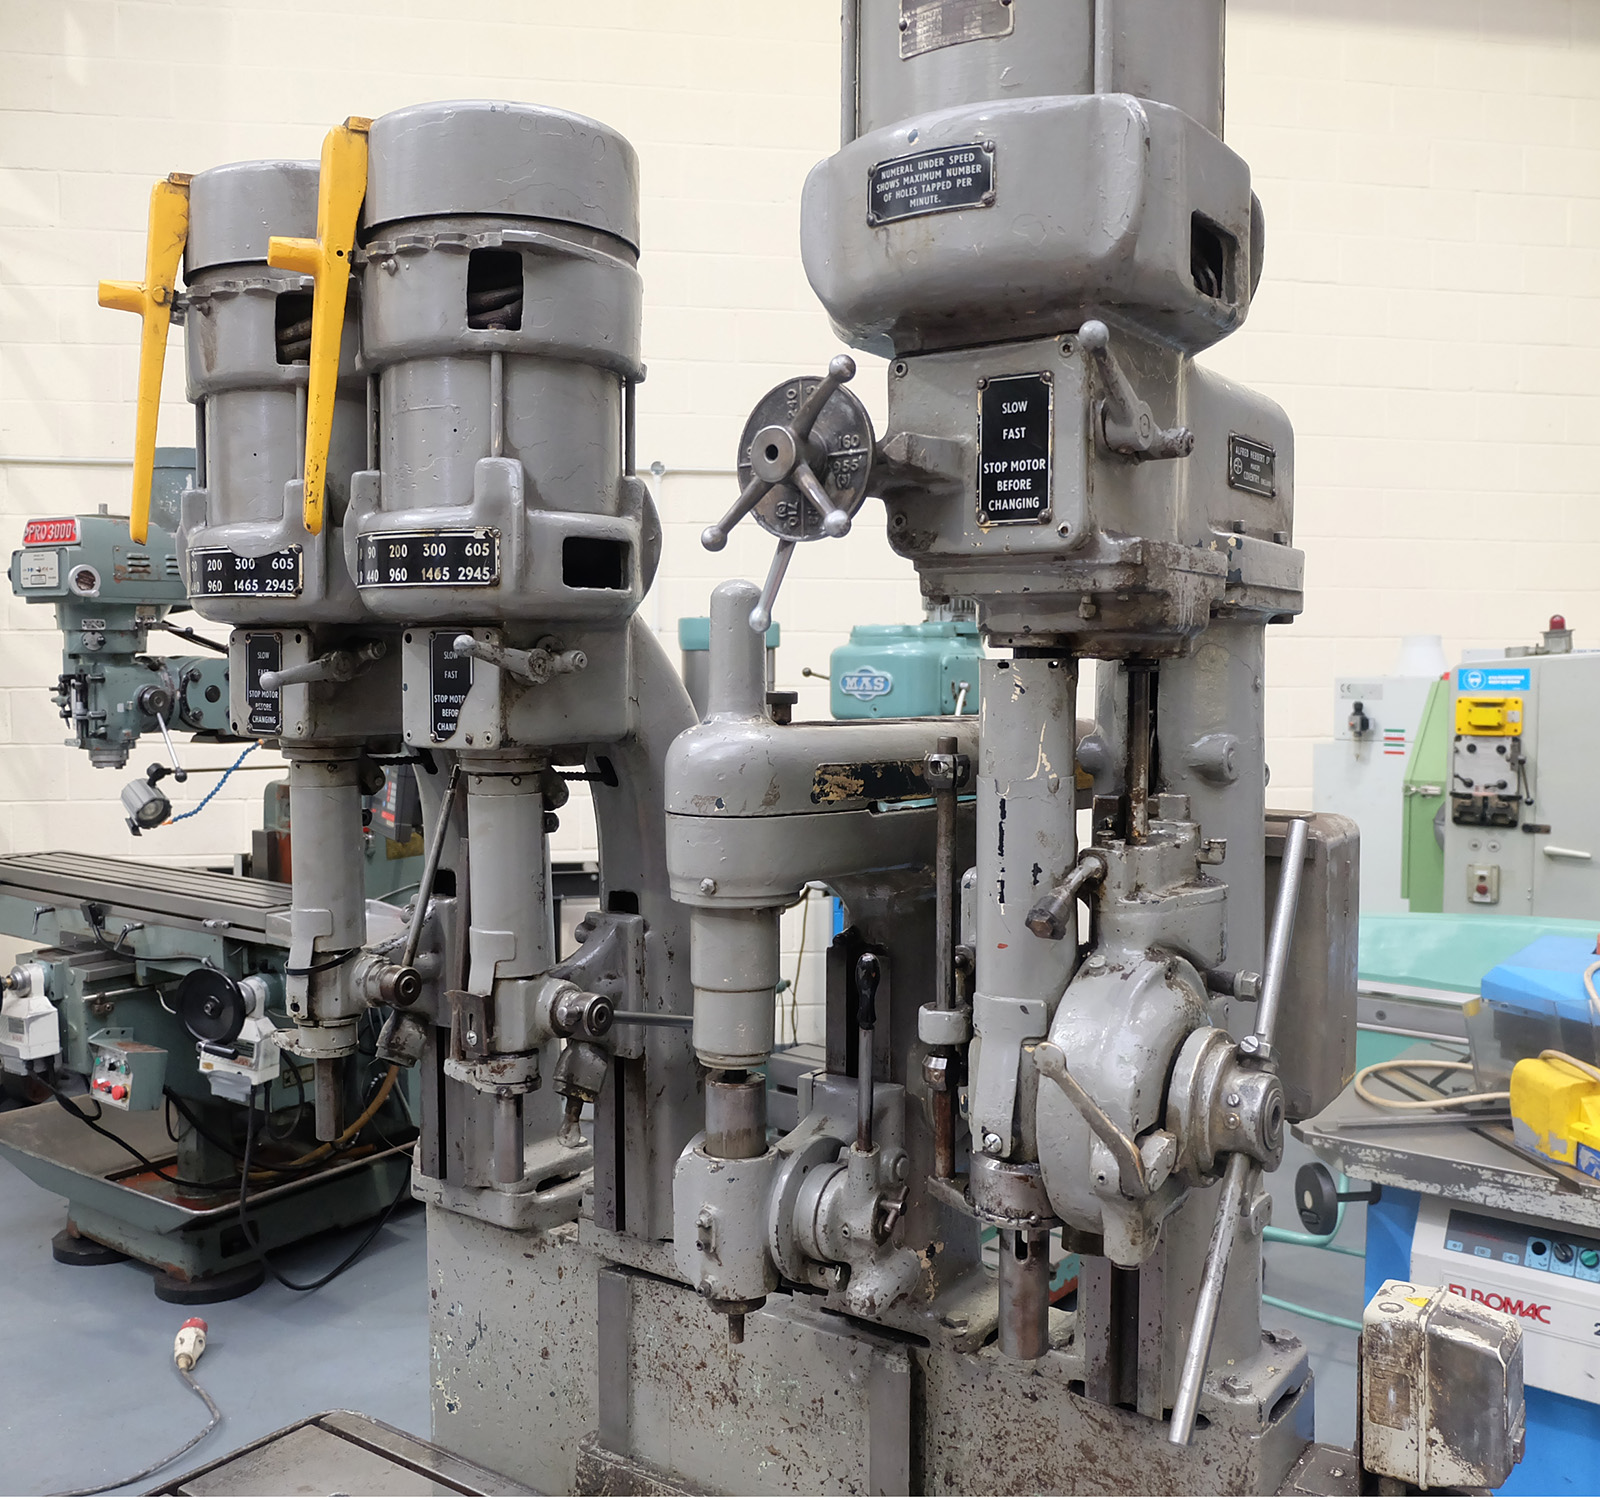 Herbert 4 Spindle In Line Drill. Table Size 46'' x 15 1/2''. - Image 3 of 10